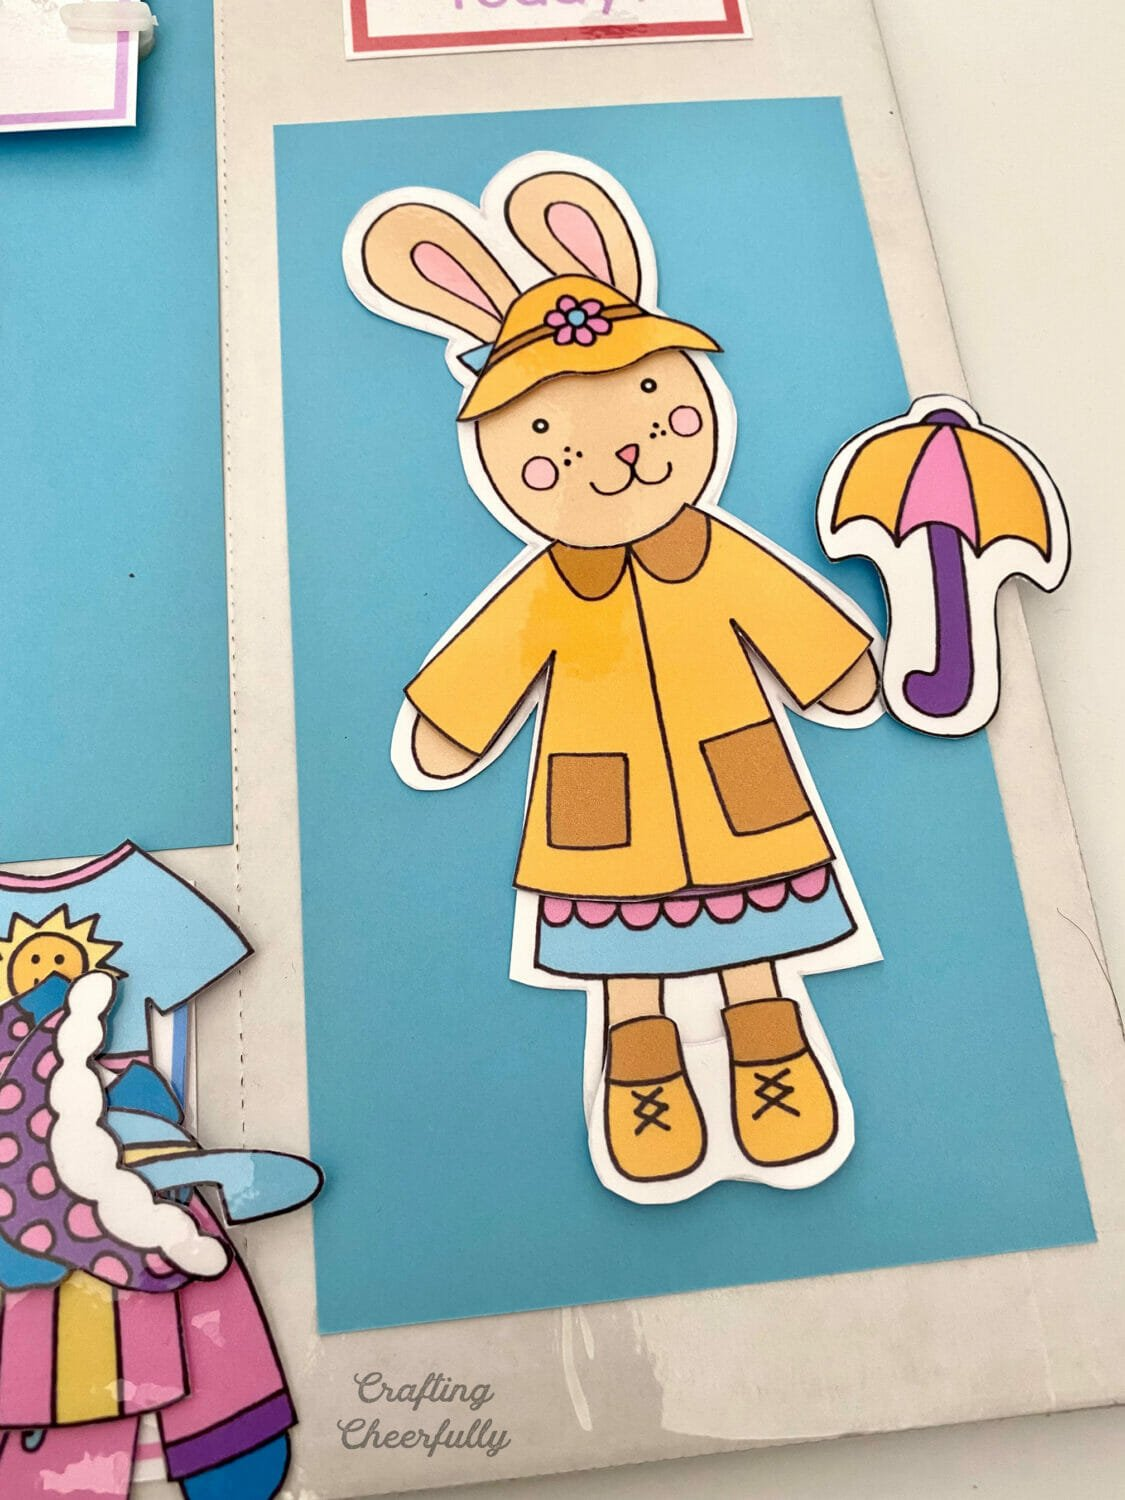 Weather bunny dressed in a raincoat.